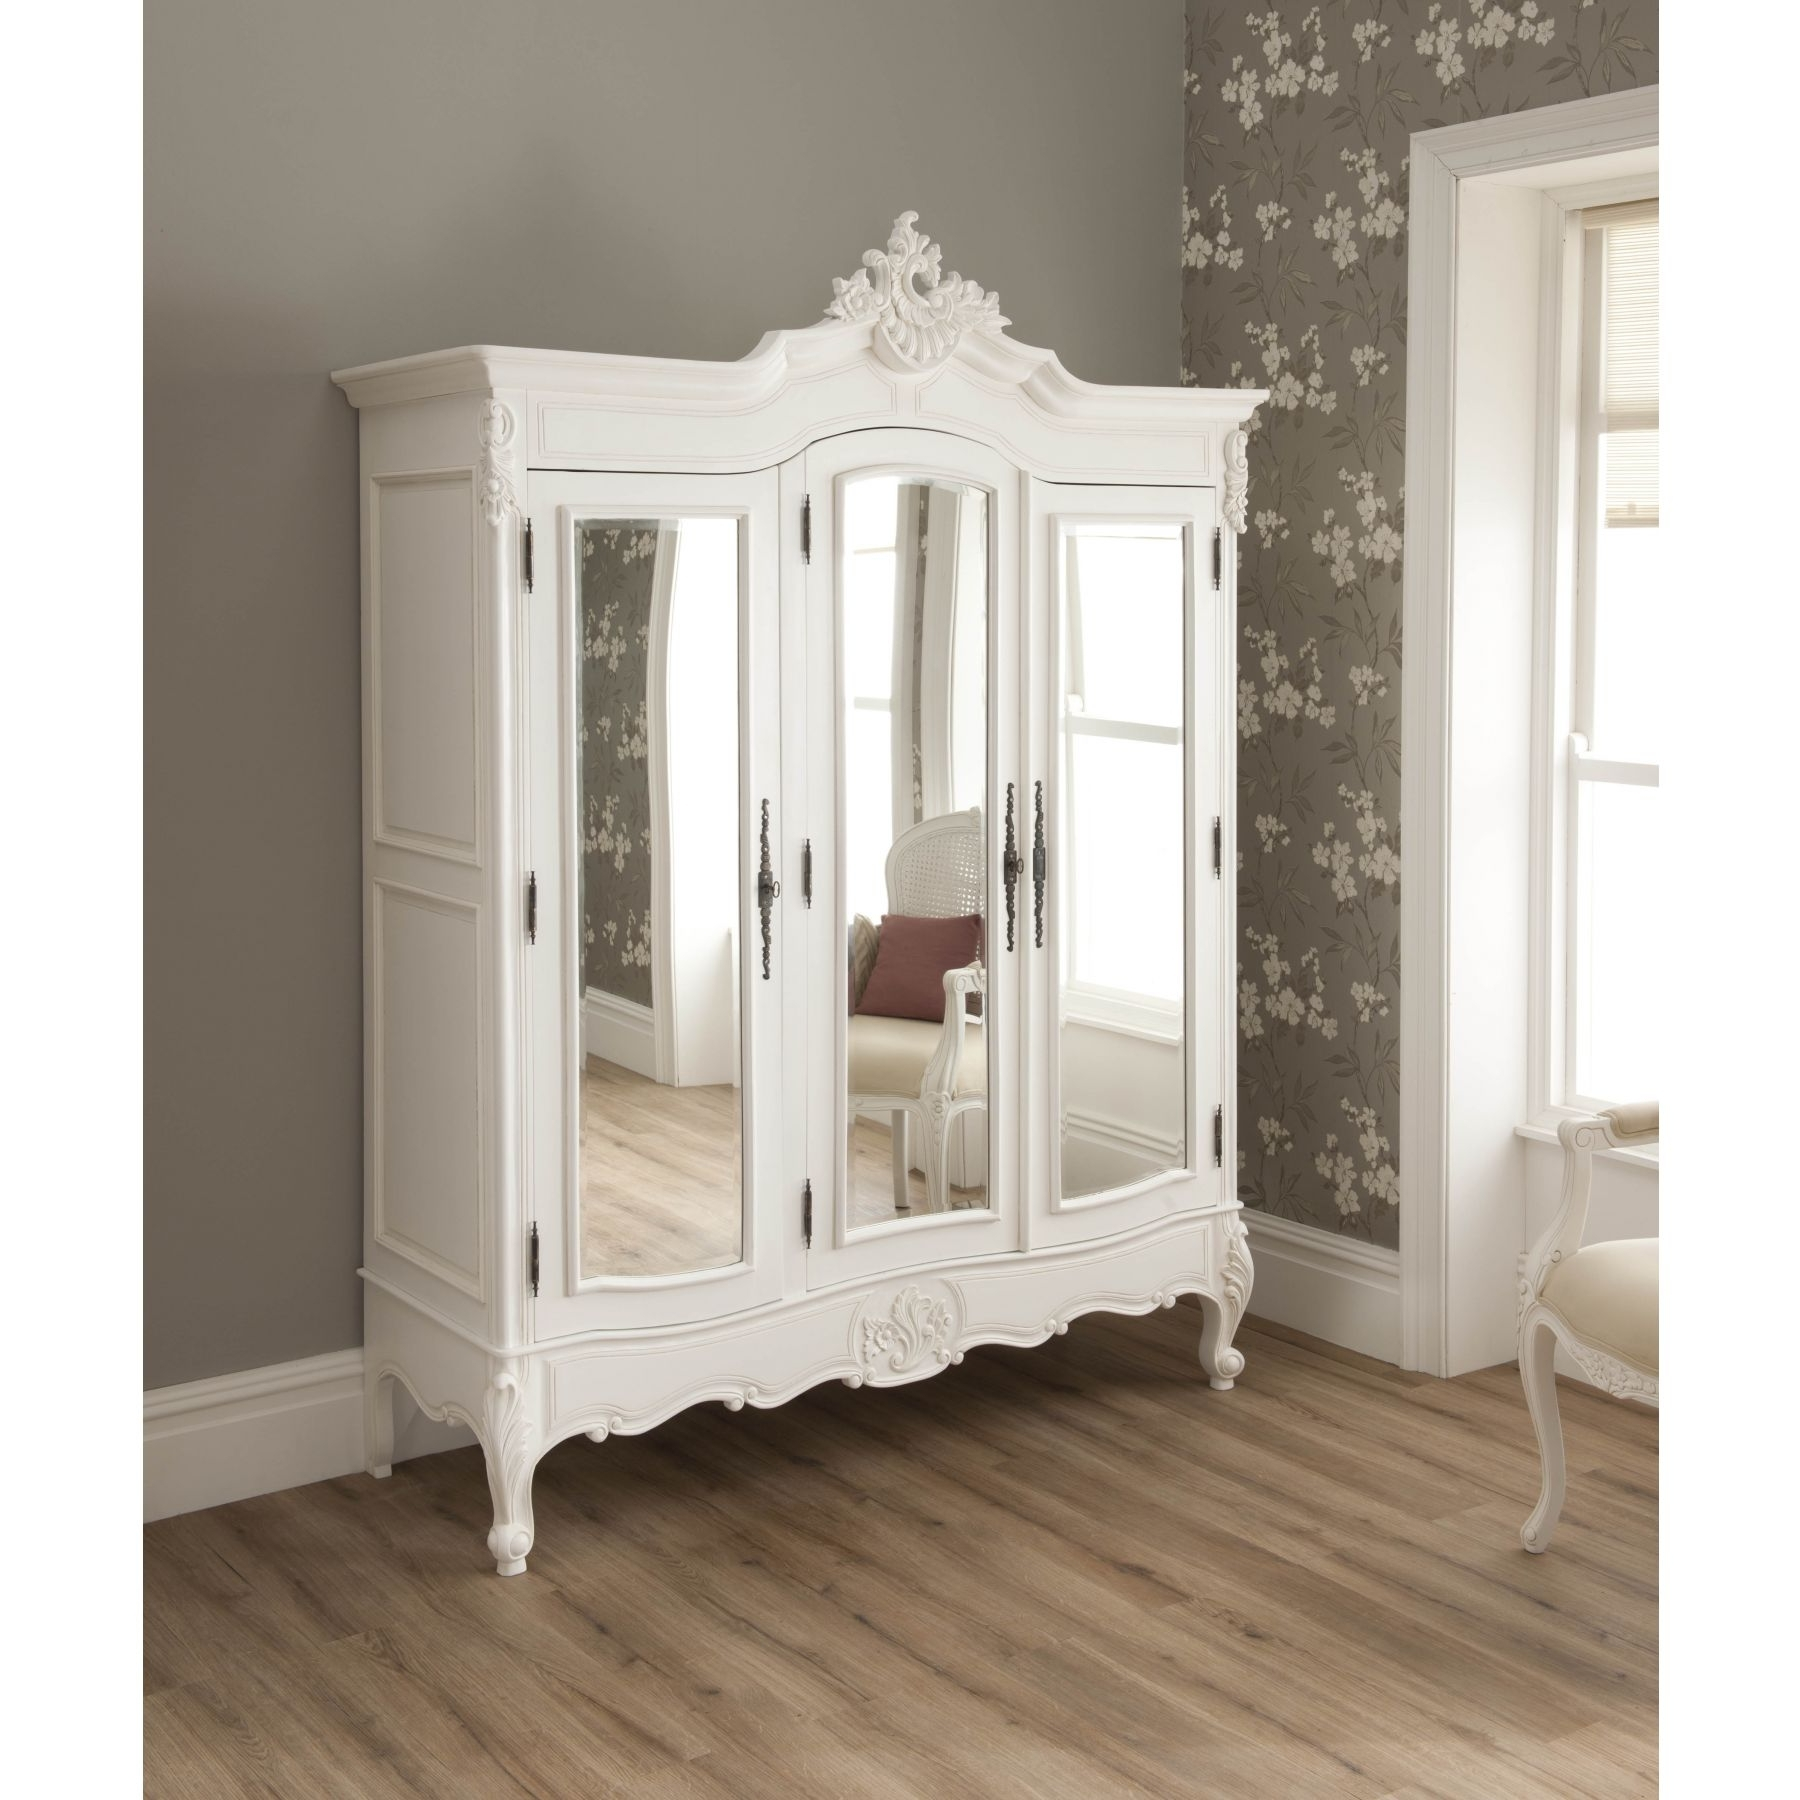 La Rochelle Shabby Chic Antique Style Wardrobe (View 11 of 15)